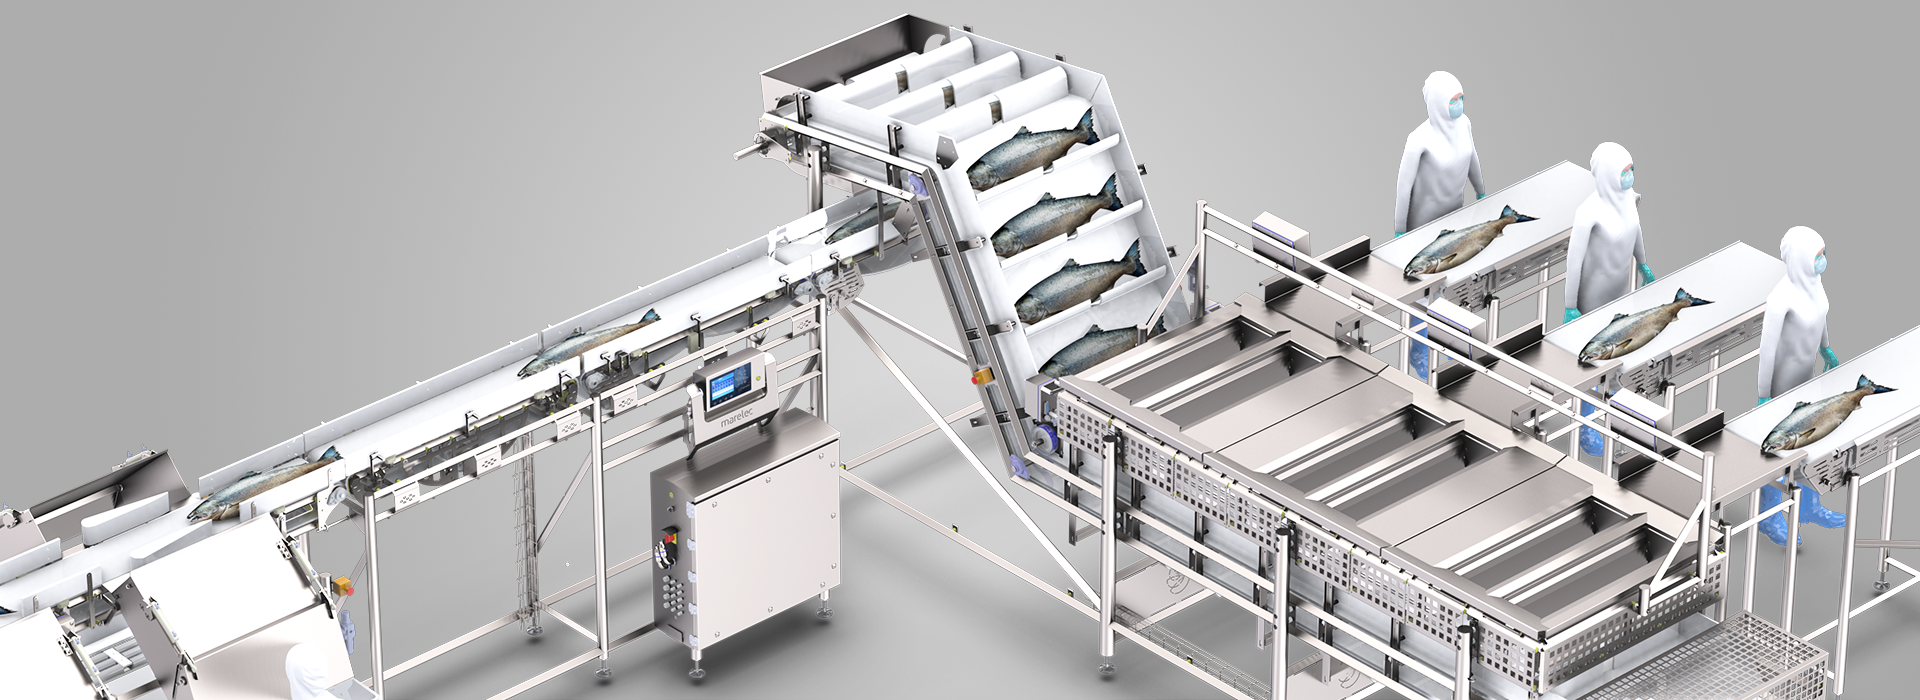 MARELEC's fast and gentle salmon grader provides unparalleled accuracy with unlimited sorting capabilities.